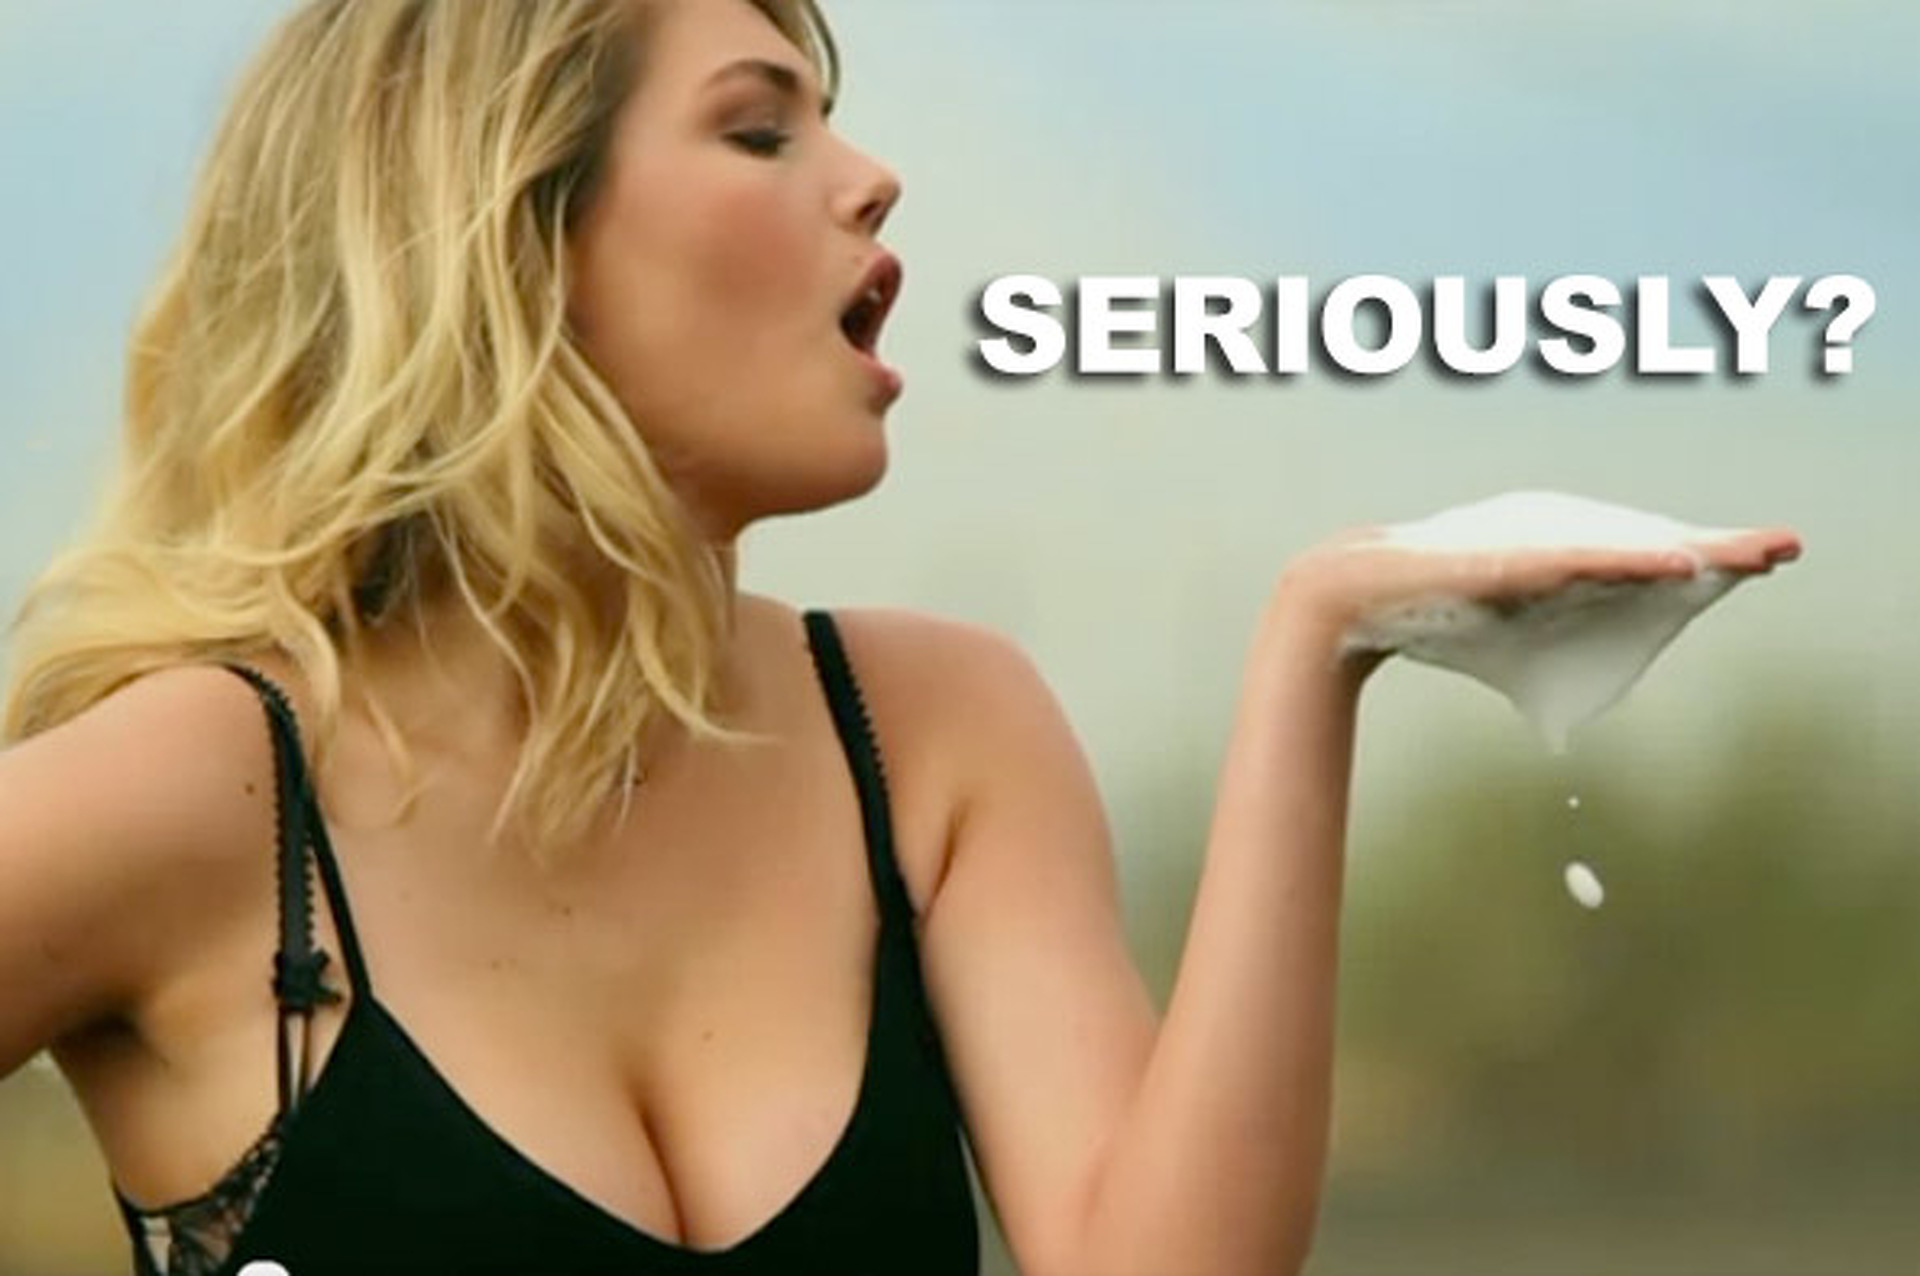 Is this Mercedes-Benz Kate Upton Super Bowl Commercial Desperate?